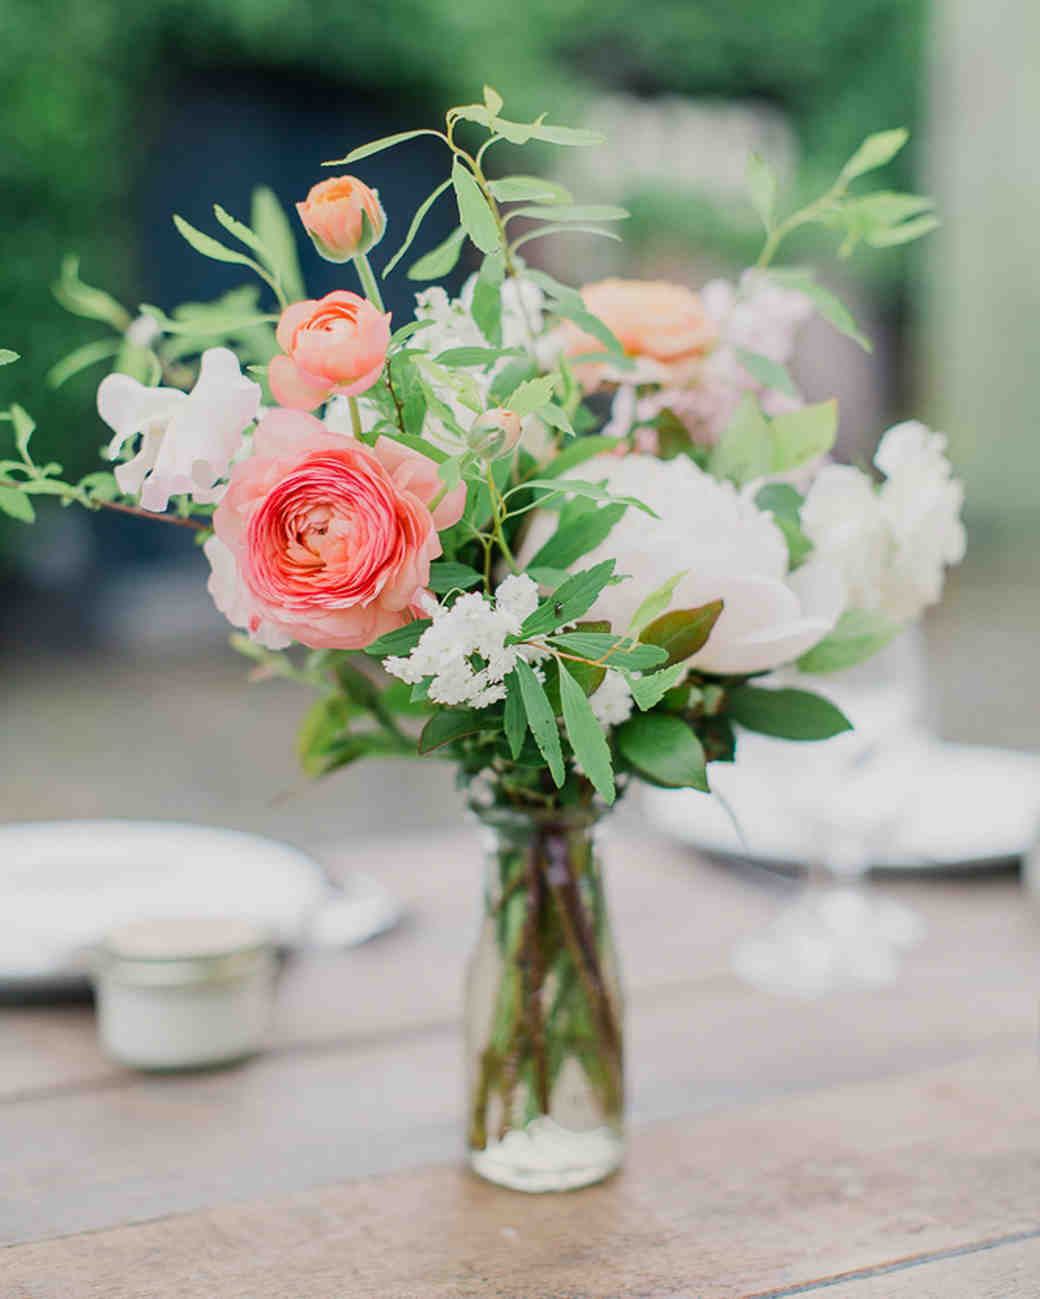 20 Wedding Flowers Ideas to Copy For Your BigDay 20 Wedding Flowers Ideas to Copy For Your BigDay new pictures